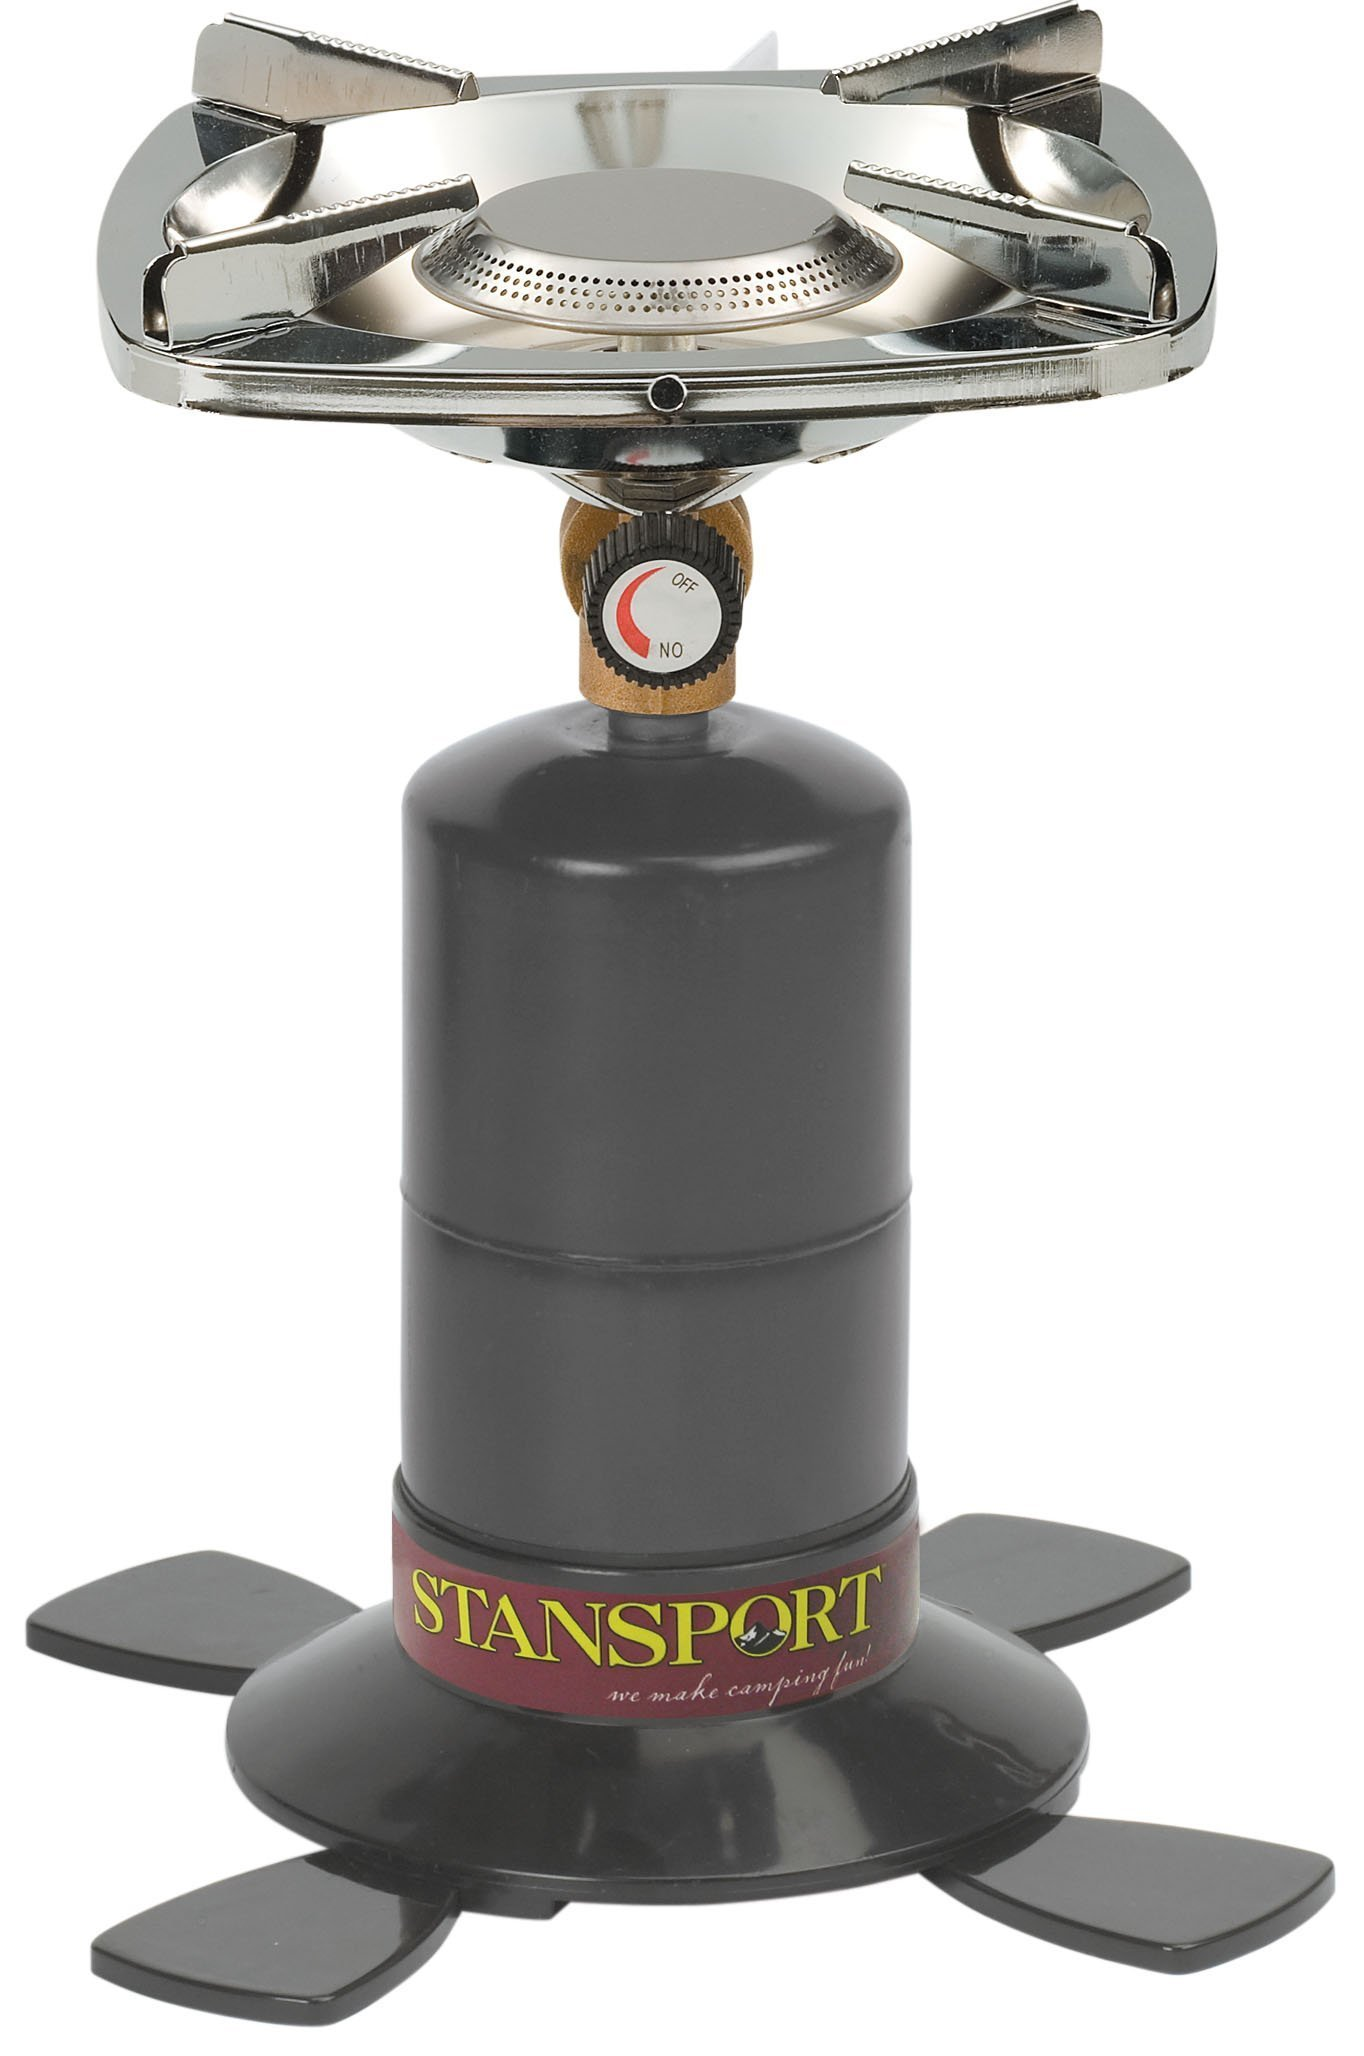 Stansport Single Burner 10,000 BTU Propane Stove, Black